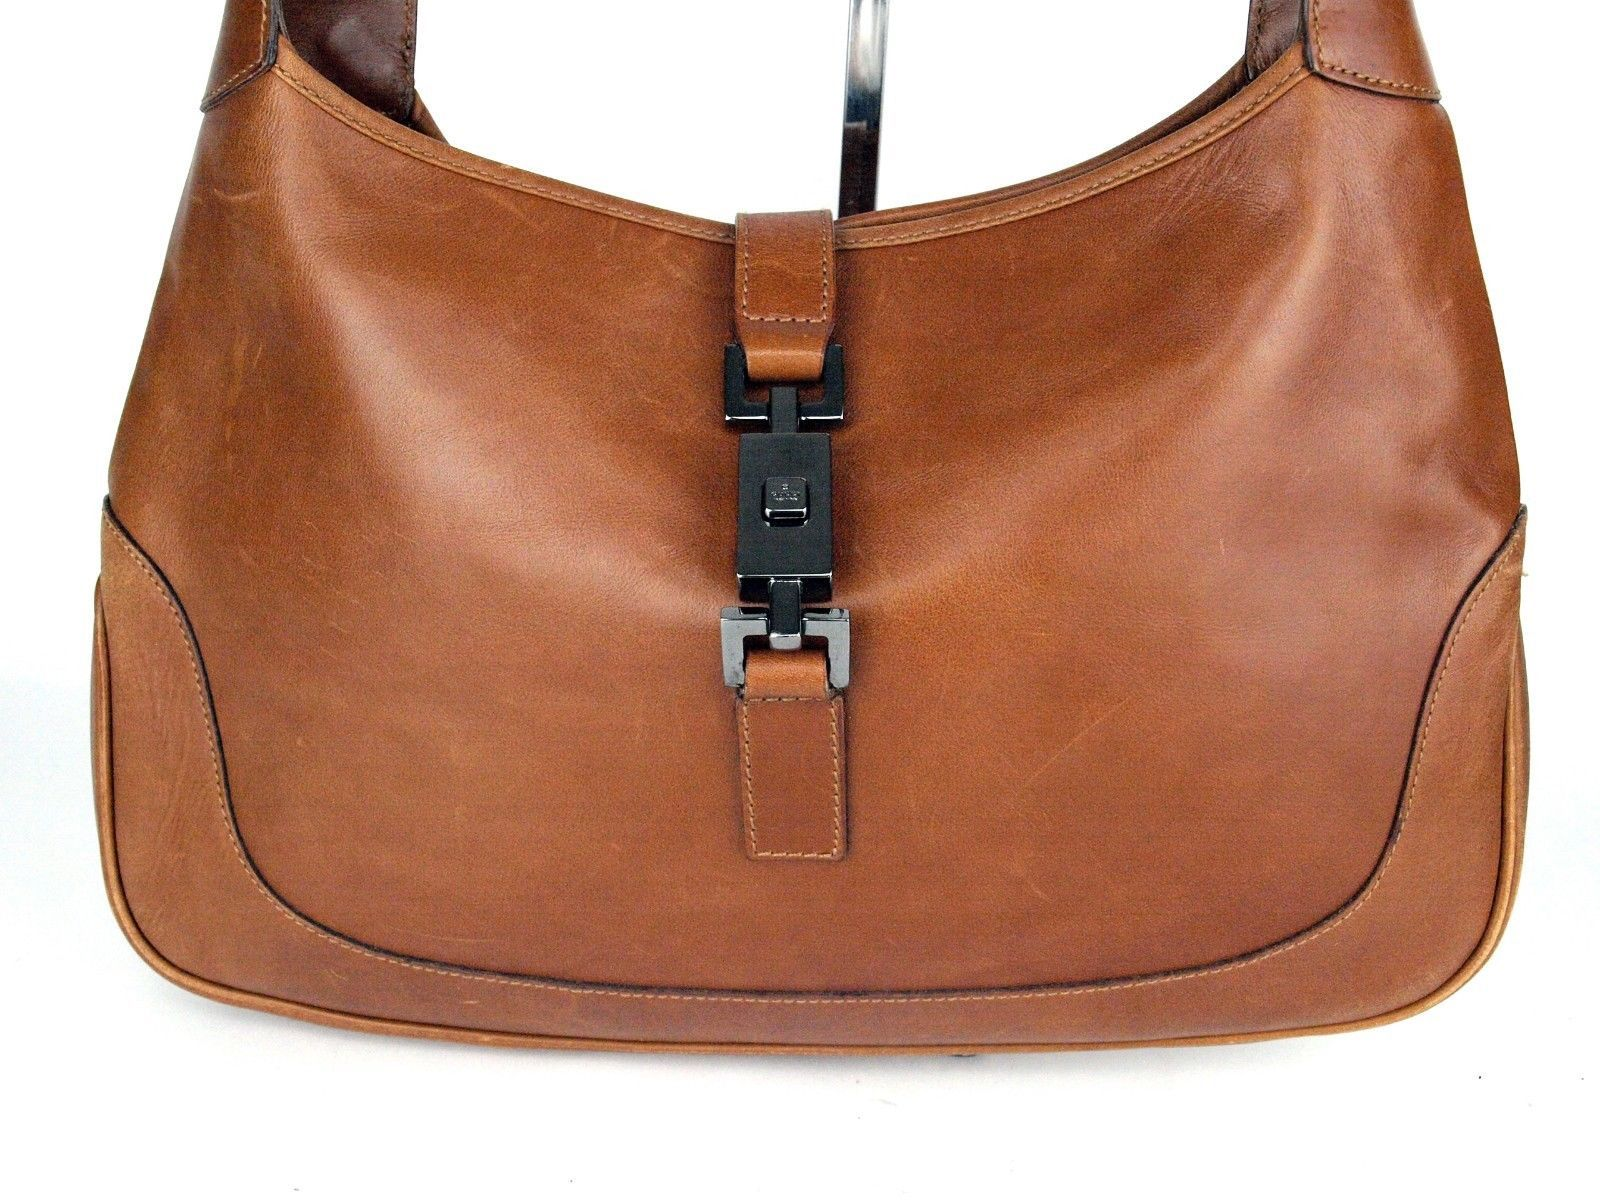 Auth Gucci Brown Leather Silver Piston Lock Hobo One Shoulder Bag Purse Italy